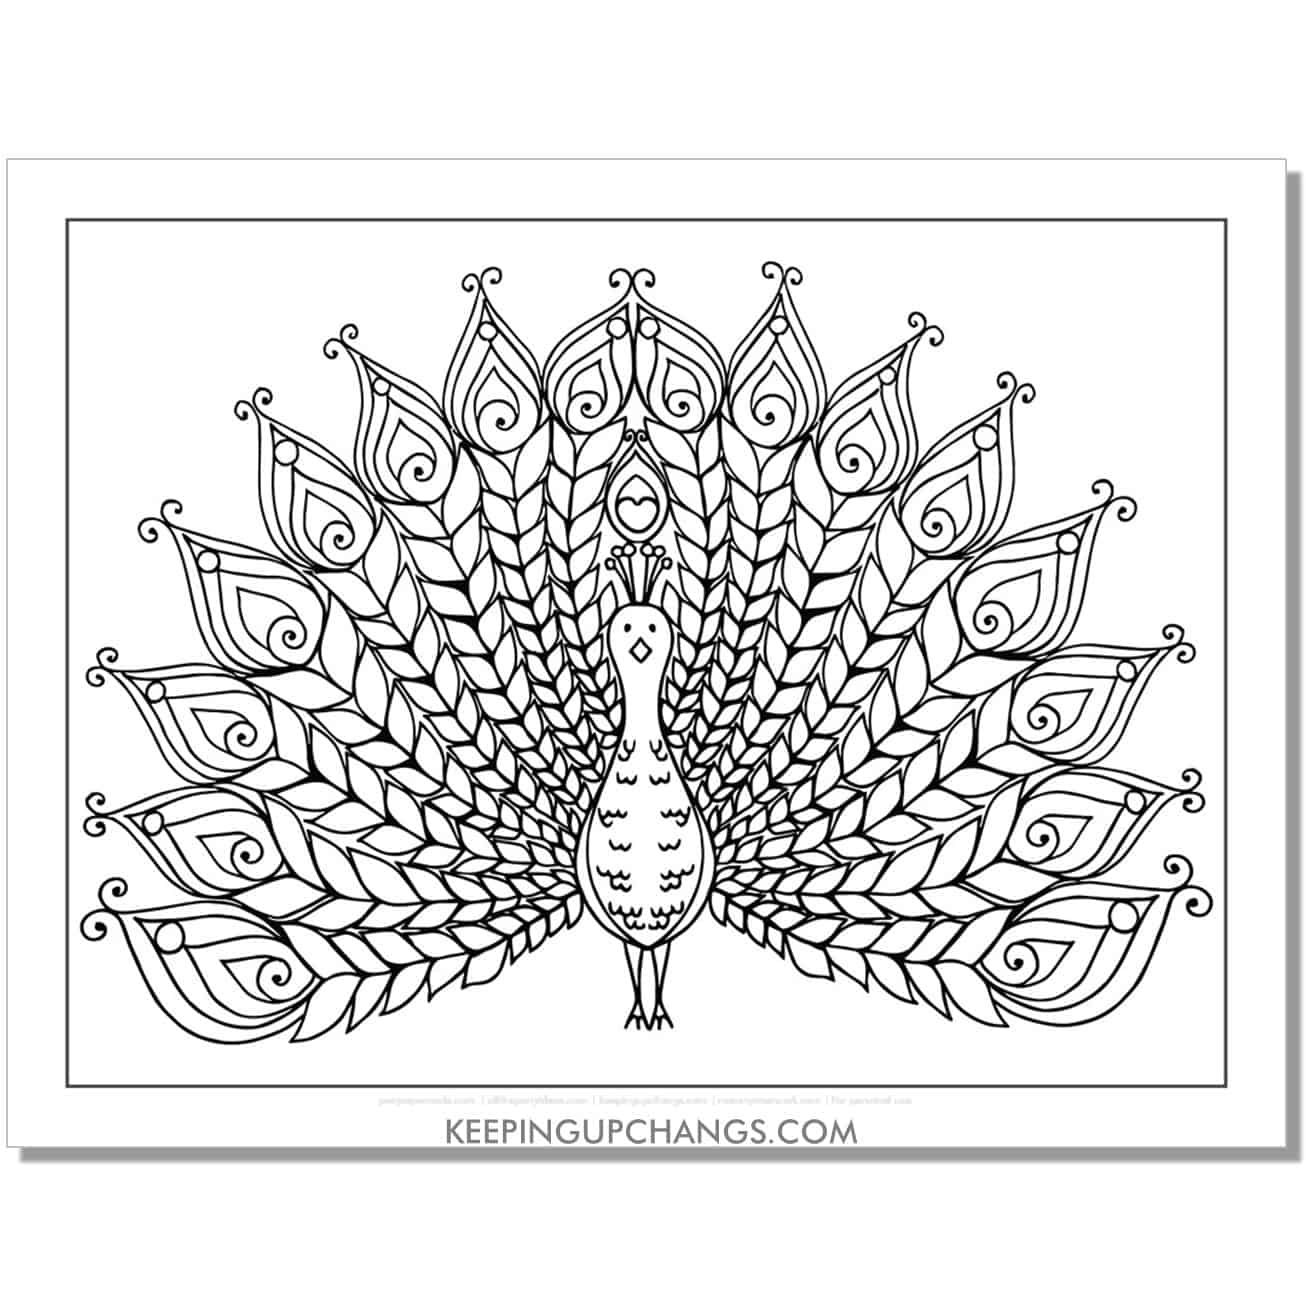 silly peacock coloring page.